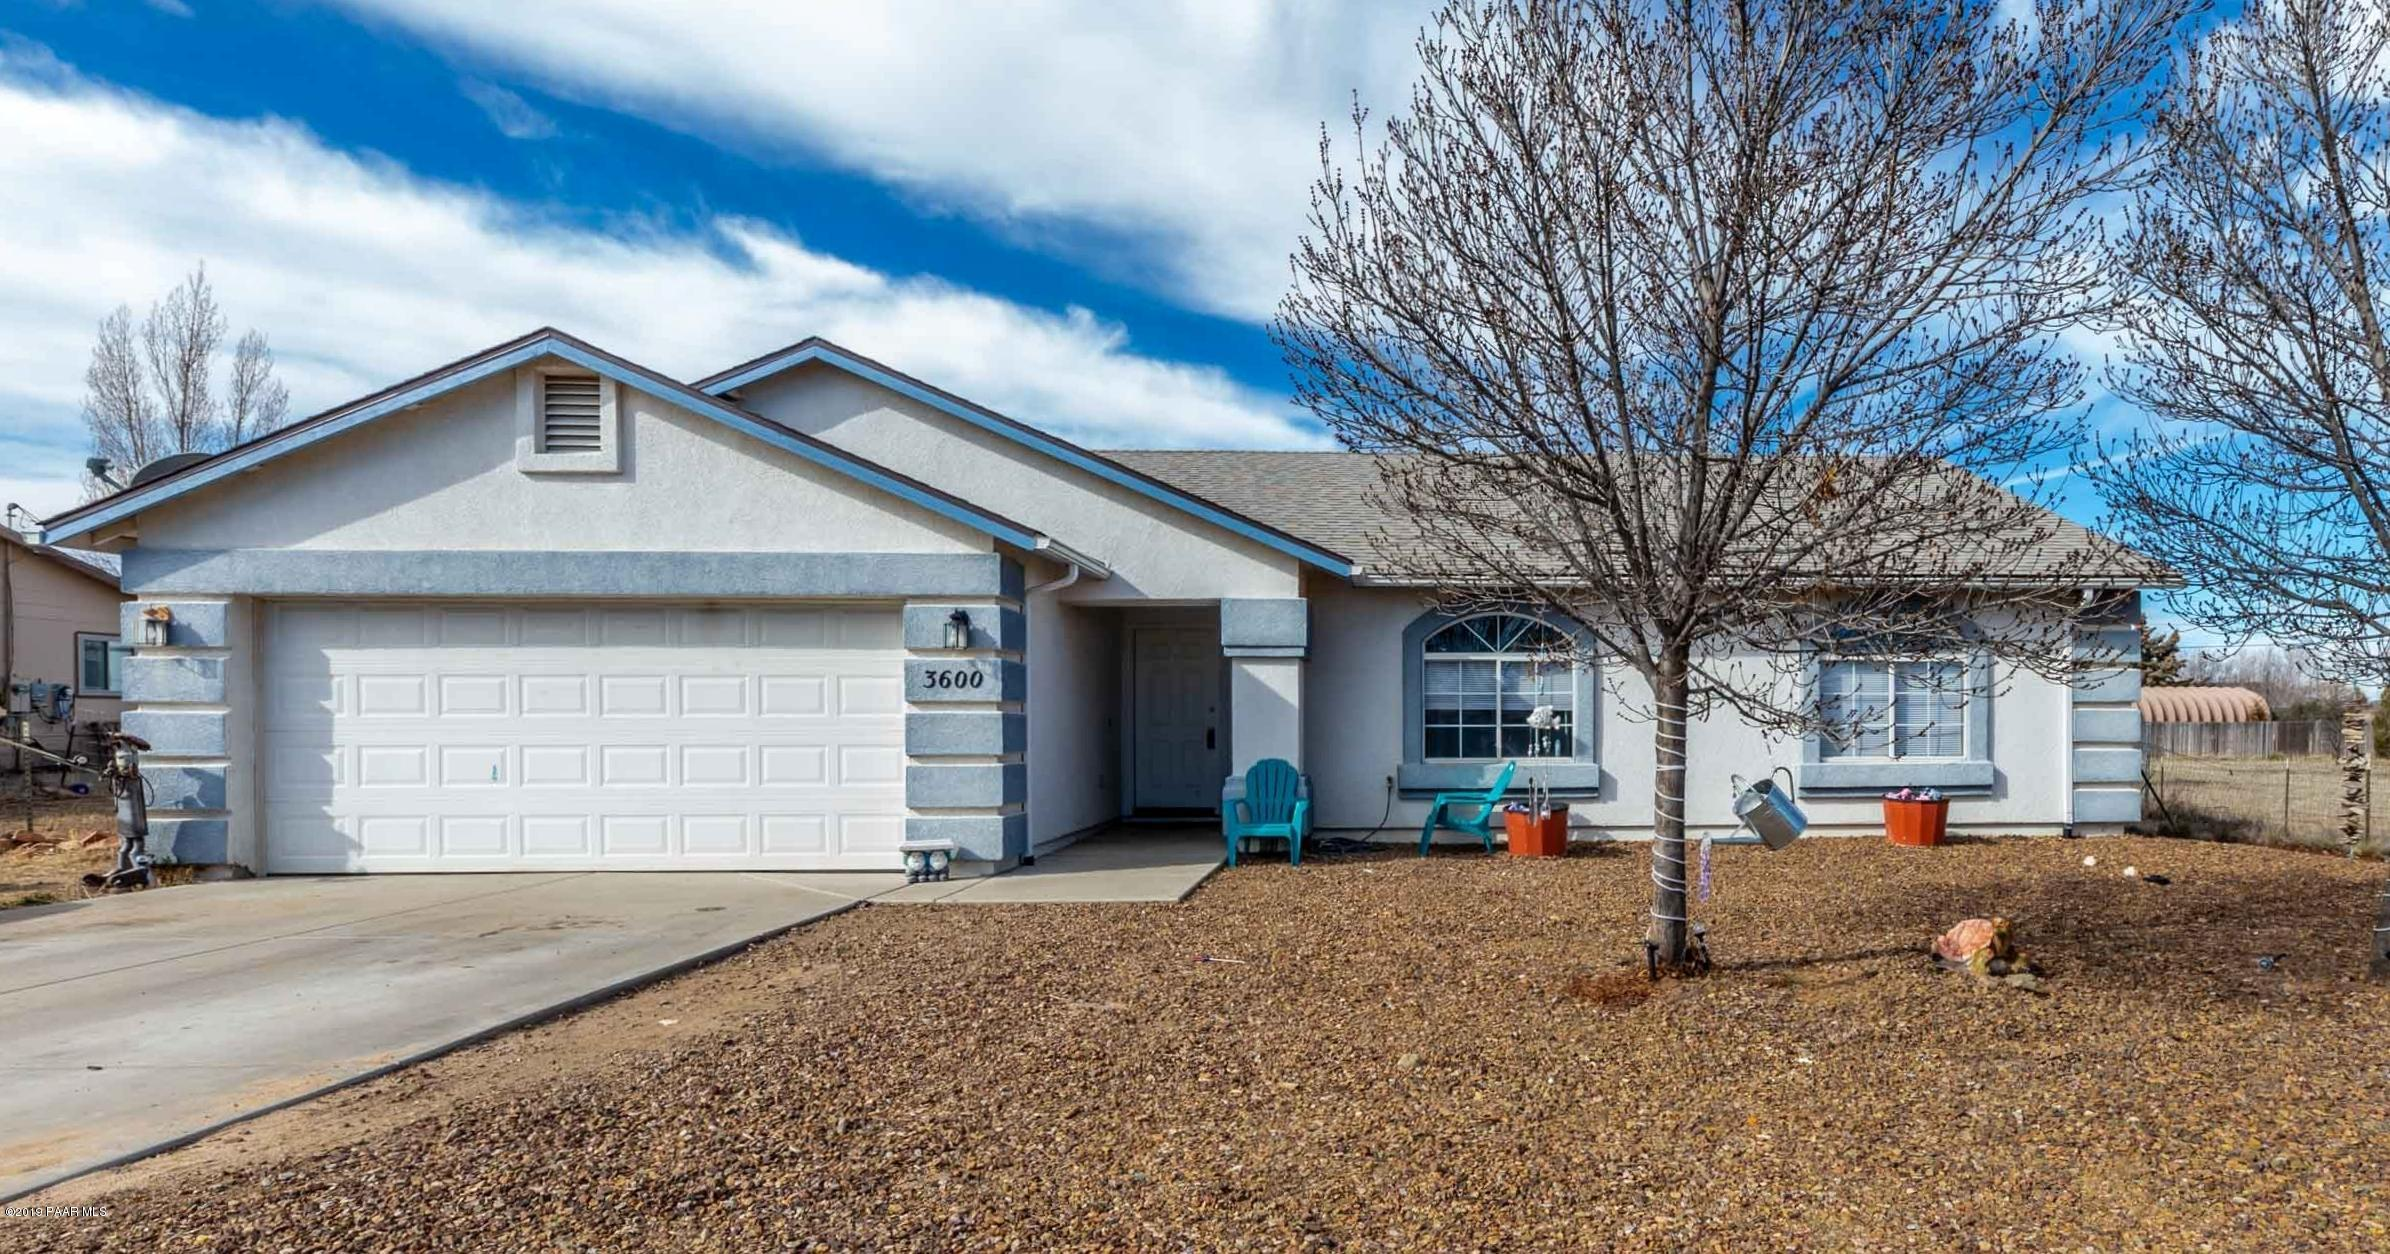 3600 N Pine View Drive, Prescott Valley in Yavapai County, AZ 86314 Home for Sale